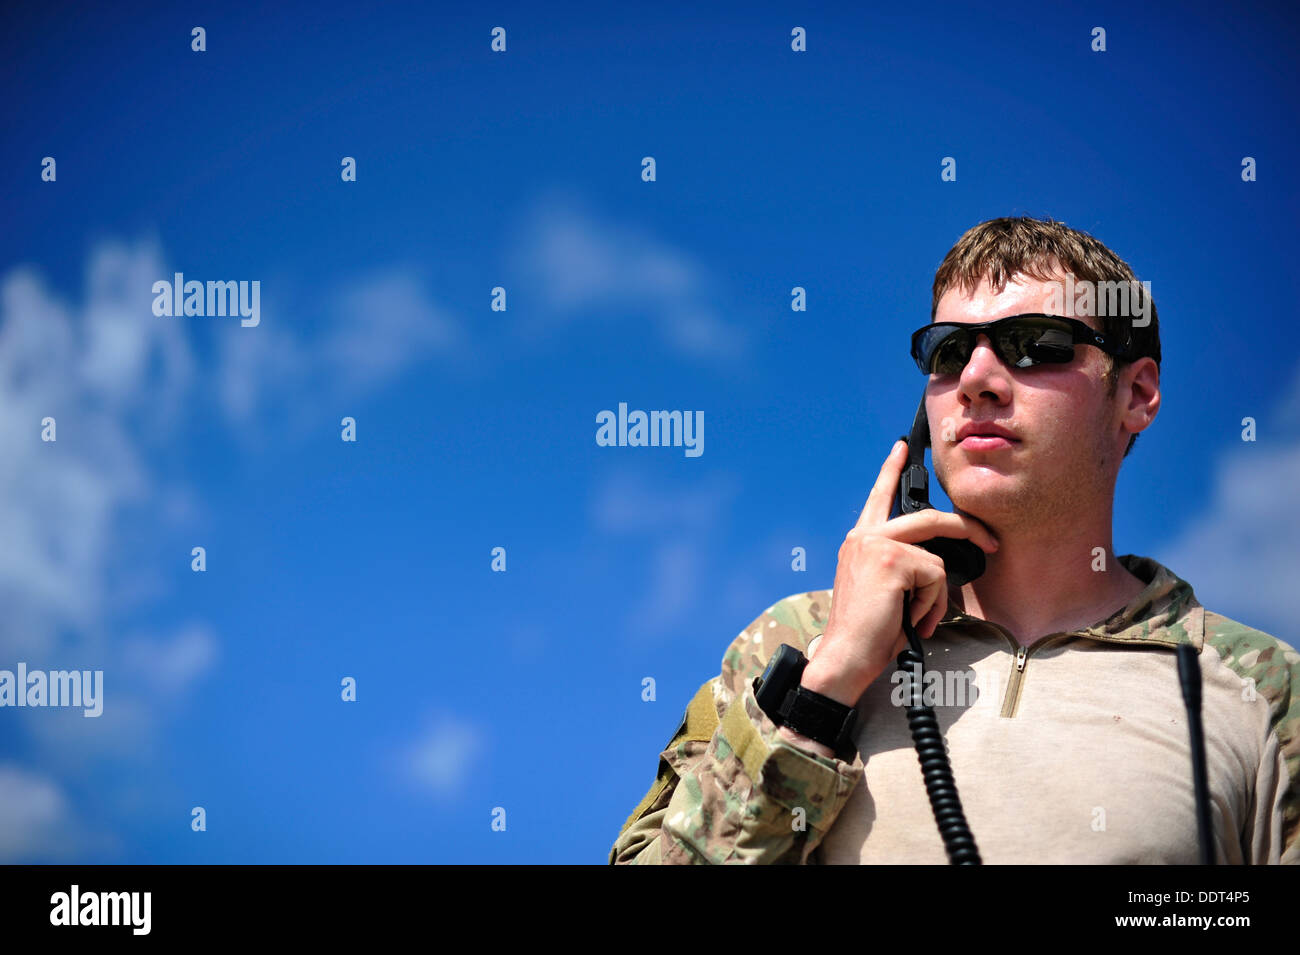 U.S. Air Force combat controller from the 21st Special Tactics Squadron, Fort Bragg, N.C. conducts air traffic control operatio - Stock Image